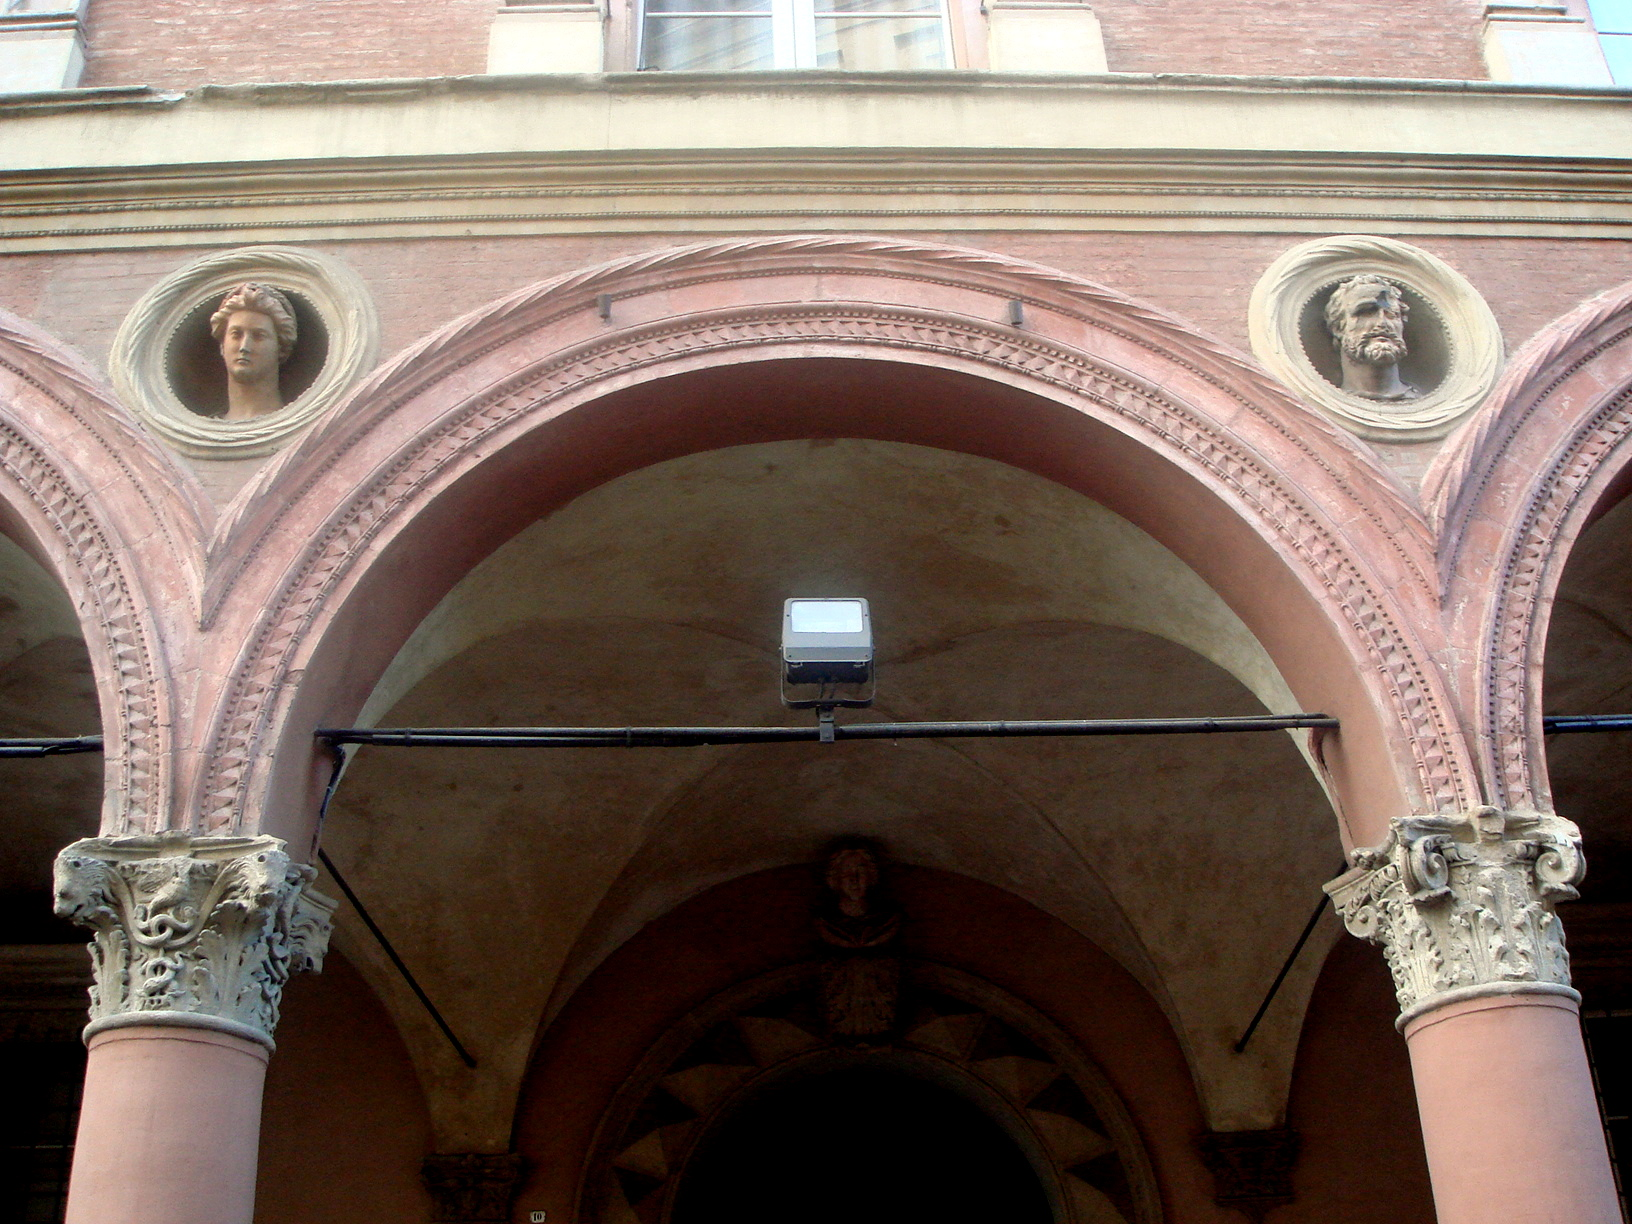 c 2 codice catastale bologna - photo#25